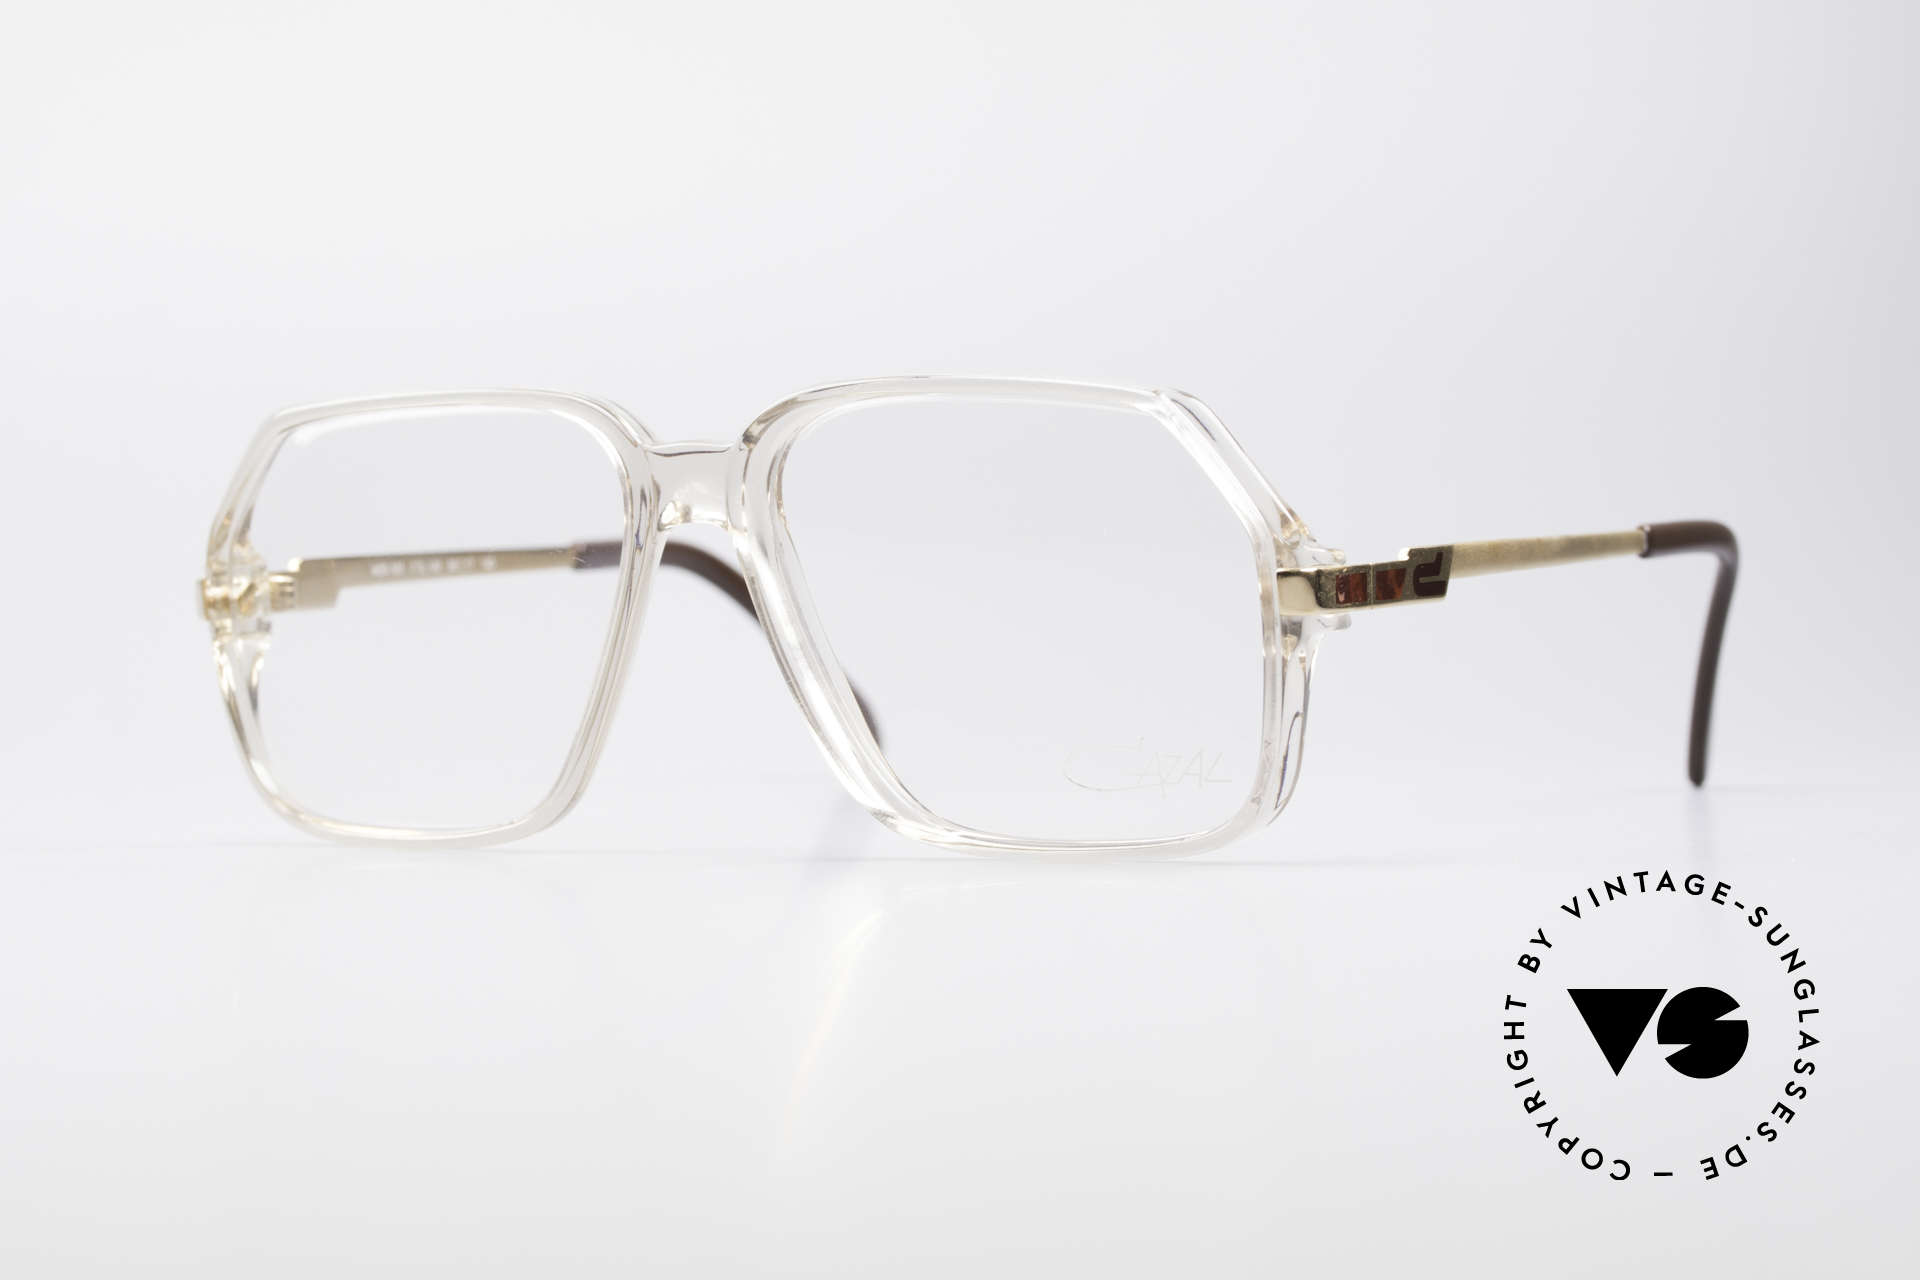 Cazal 625 West Germany 80's Eyeglasses, model from the late 70's / early 80's by CAri ZALloni, Made for Men